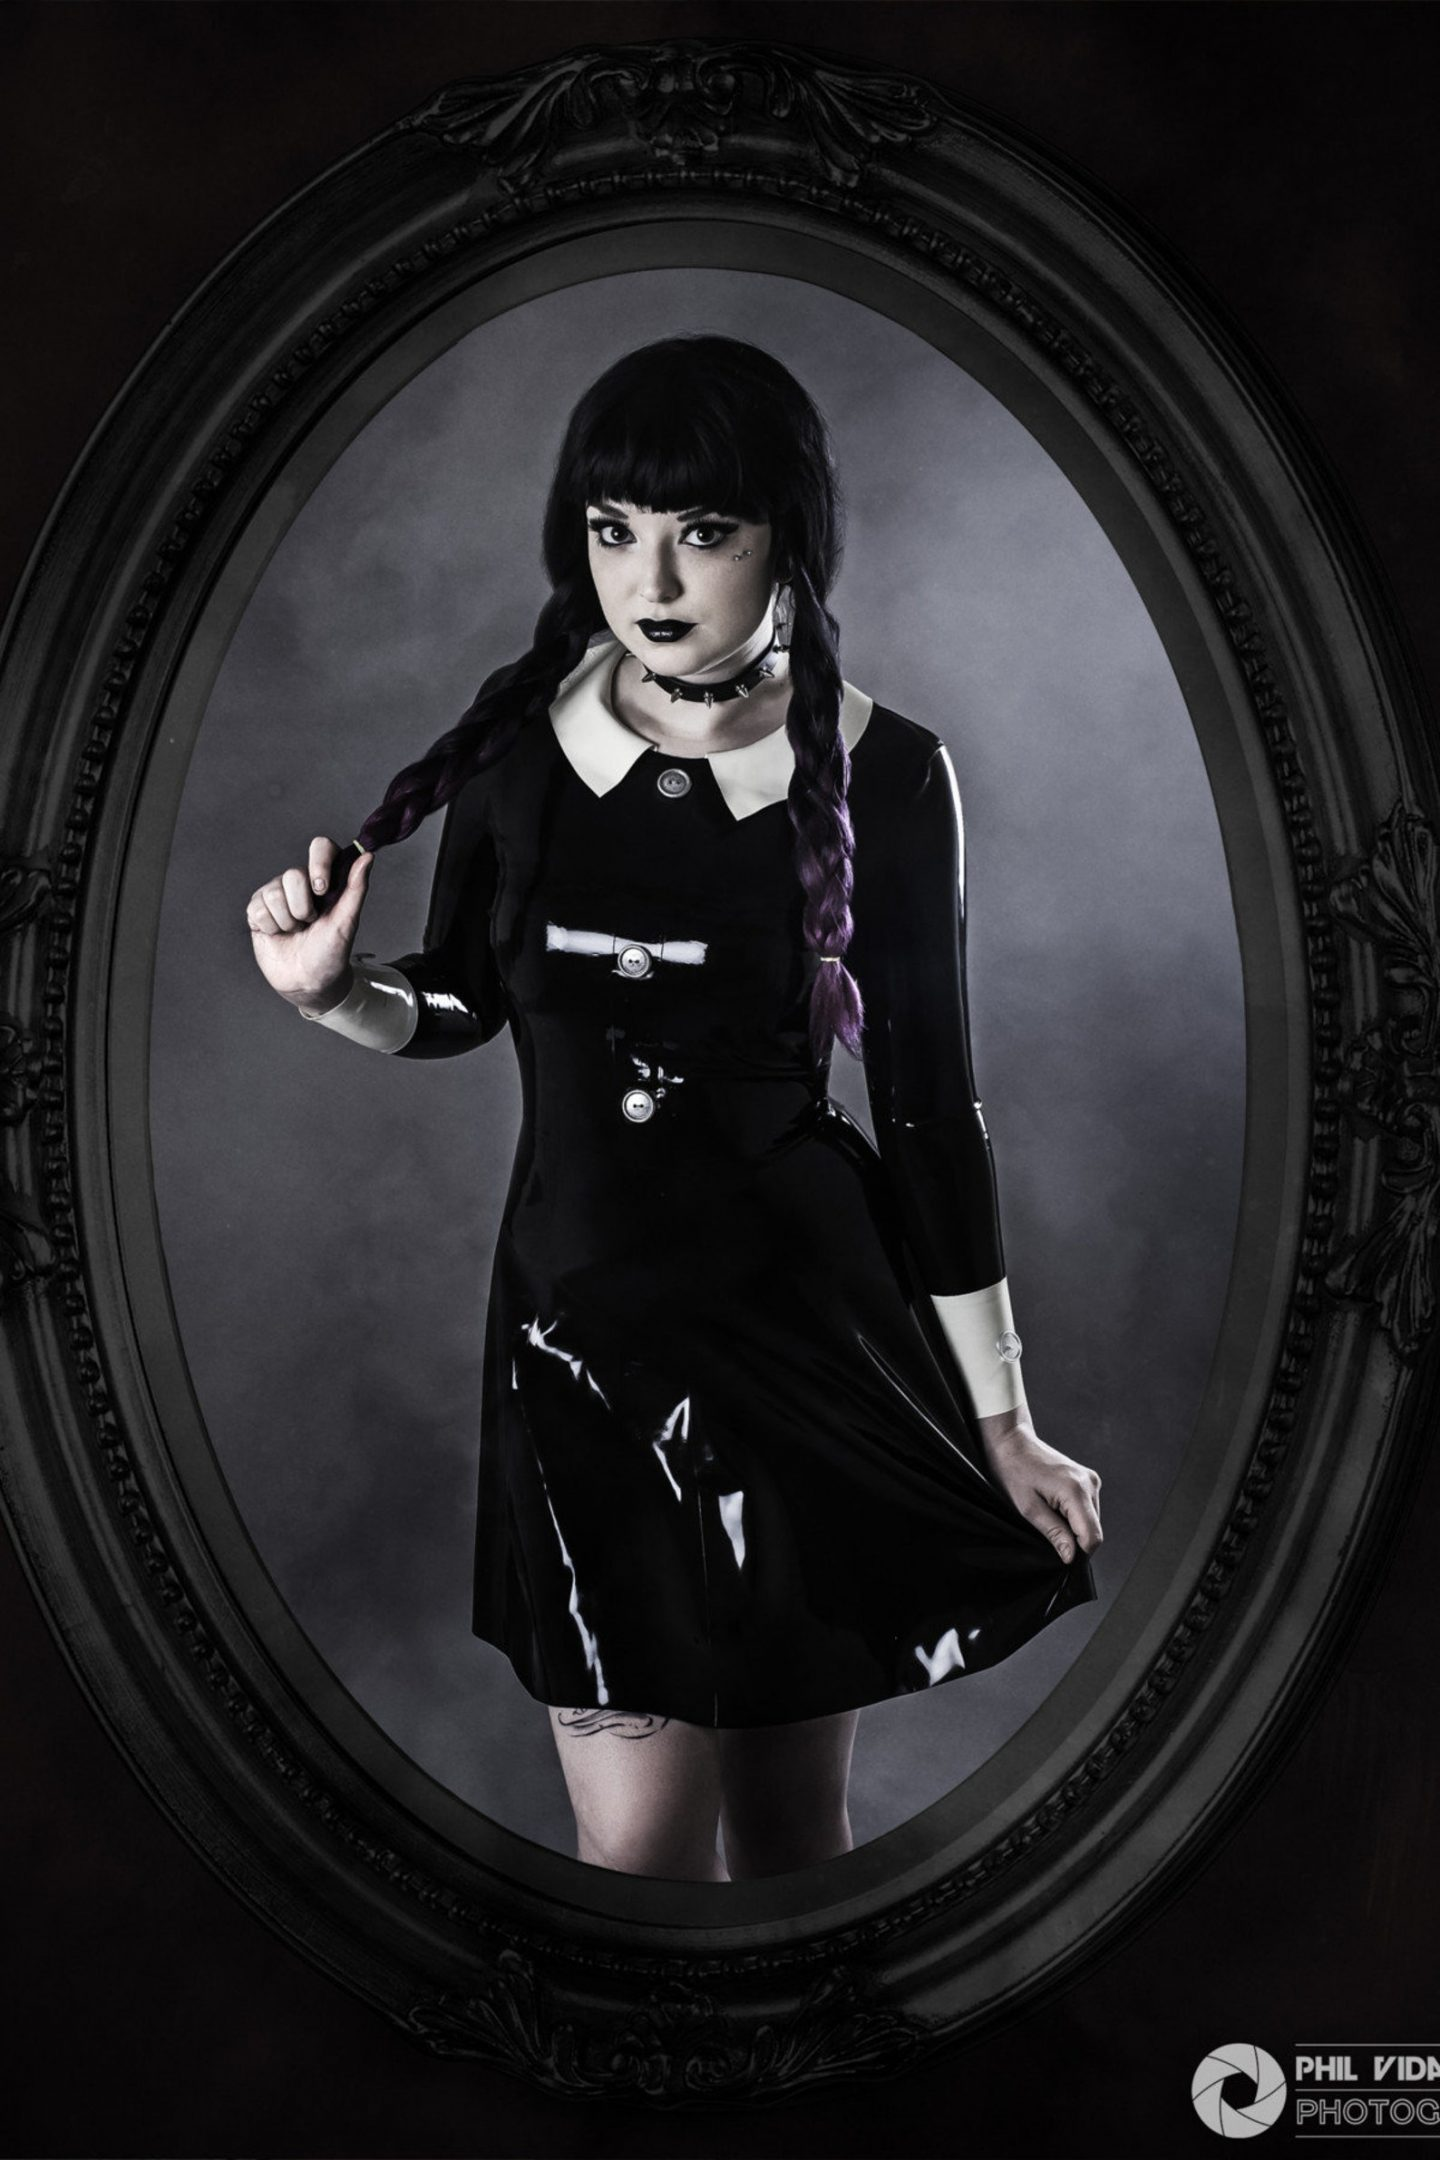 Wednesday Addams Family Halloween costume for women